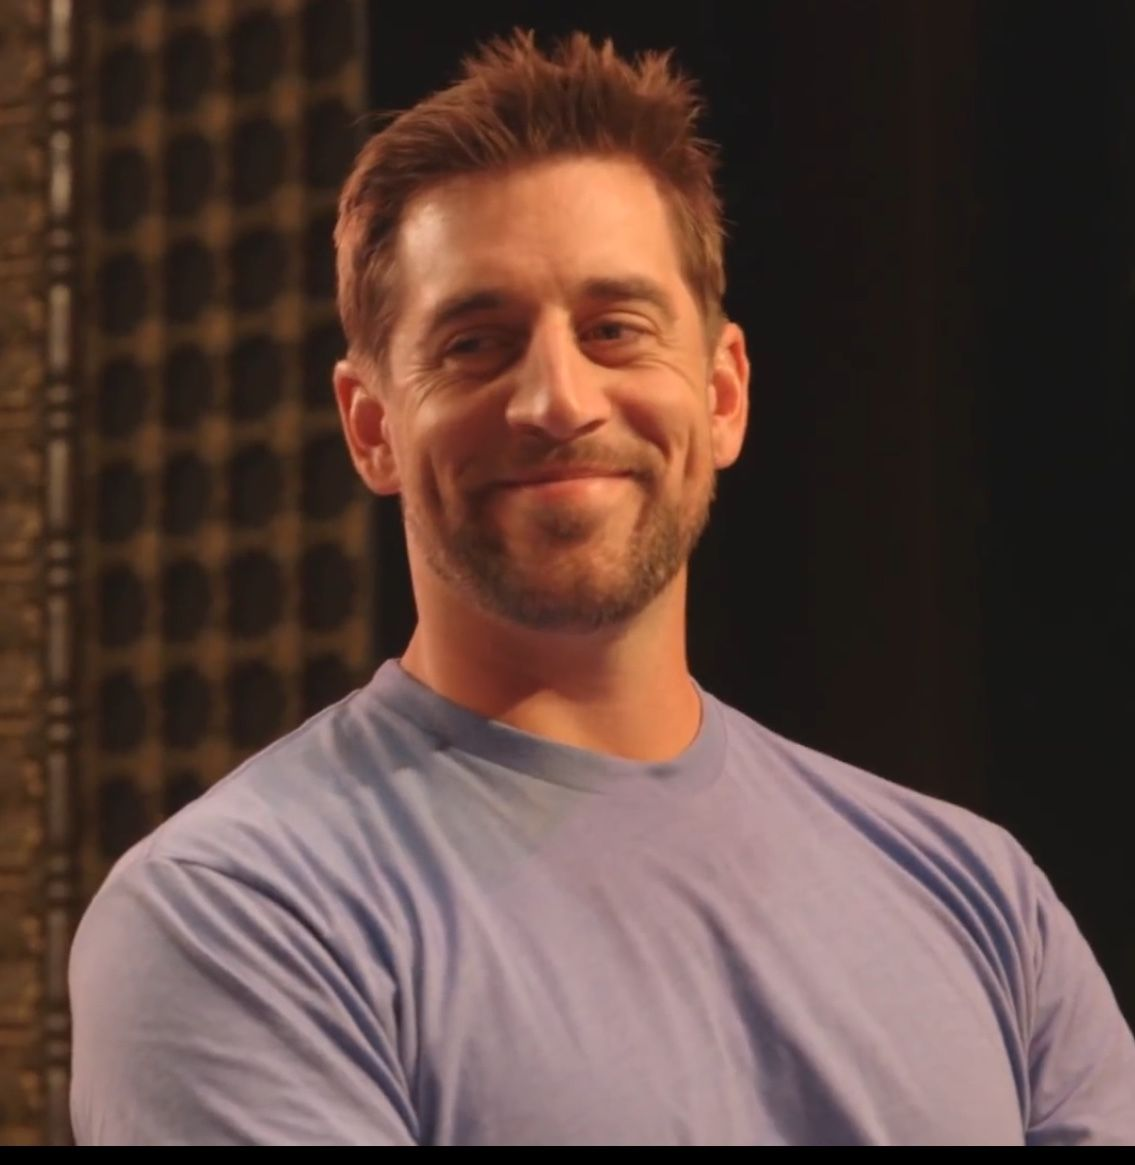 Pin By Maddie Patterson On Packers Football With Images Aaron Rodgers Go Packers Aaron Rogers